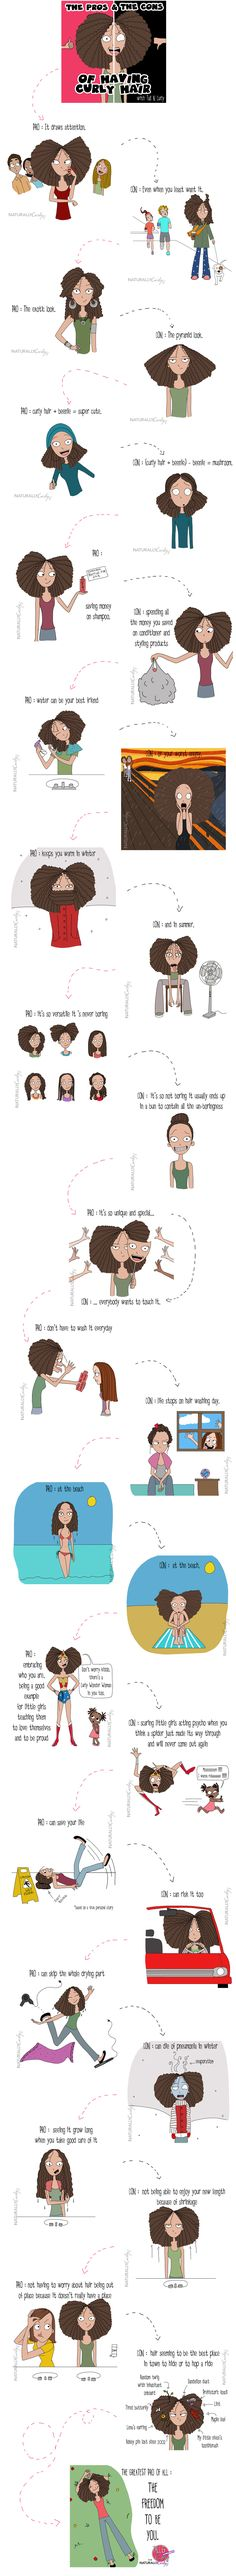 The pros and cons of curly hair. Repin if you feel our joys and pains! Wouldn't trade it for the world though! :)